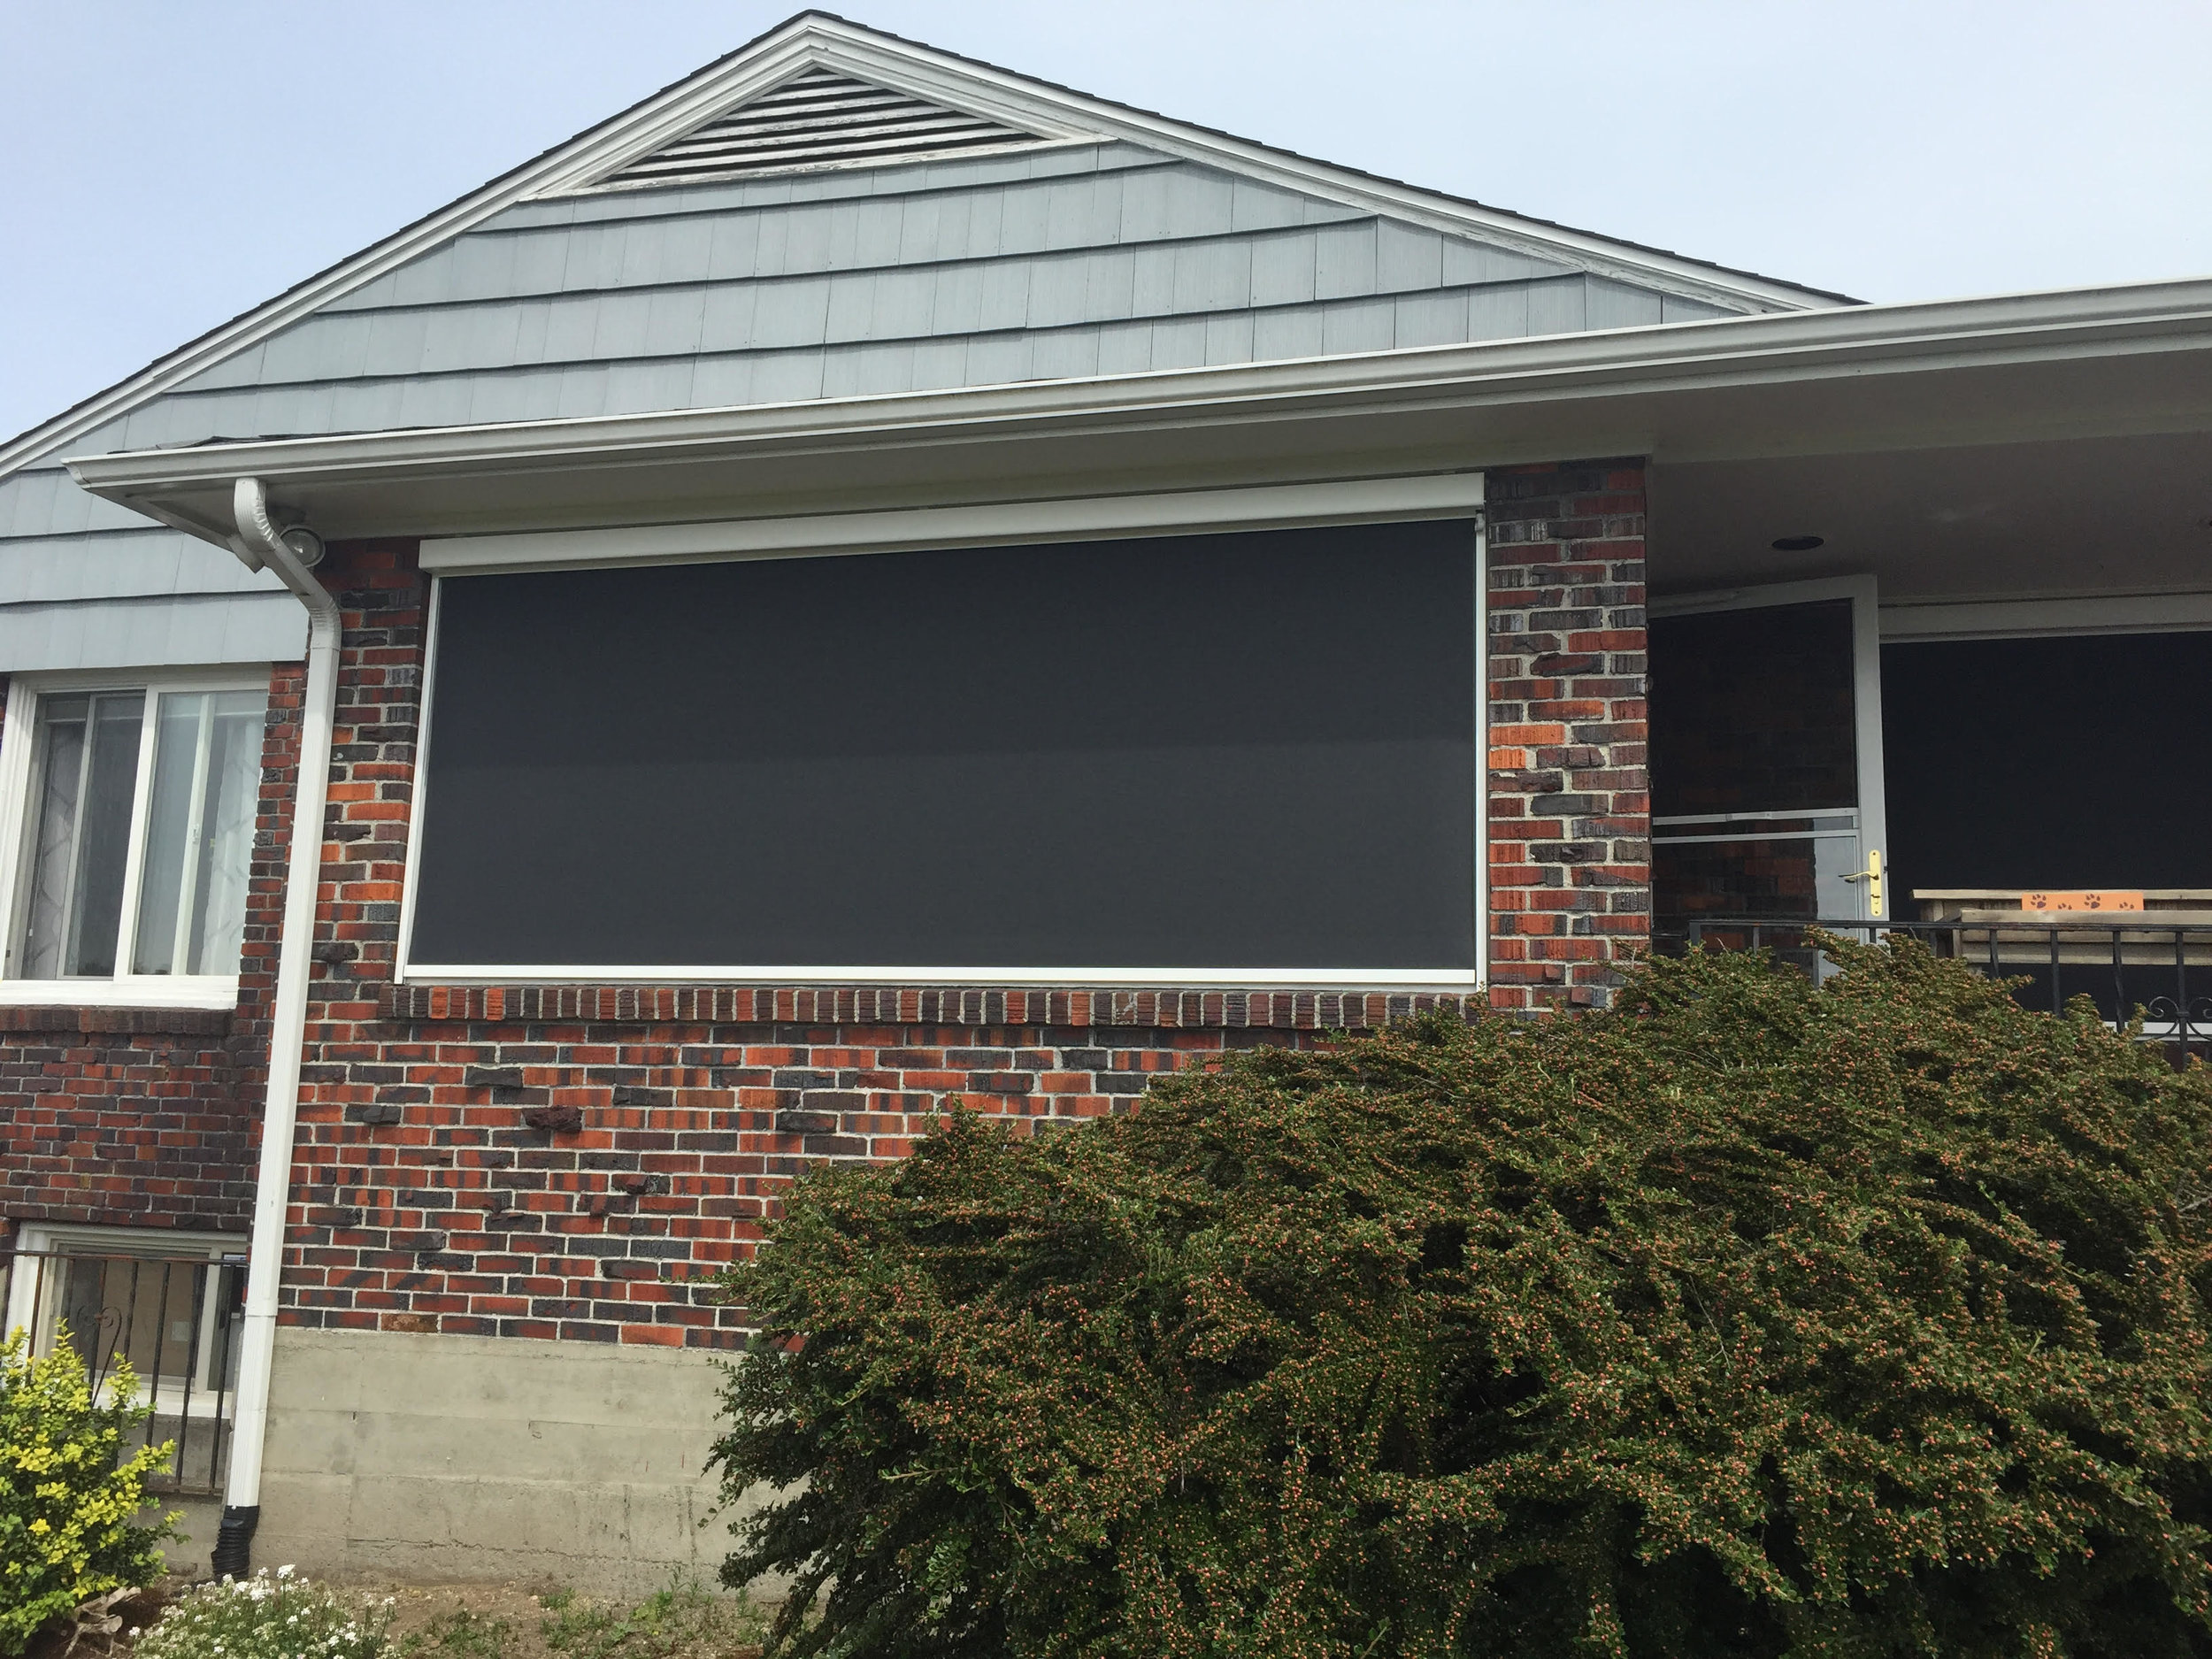 Large Motorized Exterior Shade Enclosed Between Brick Surround